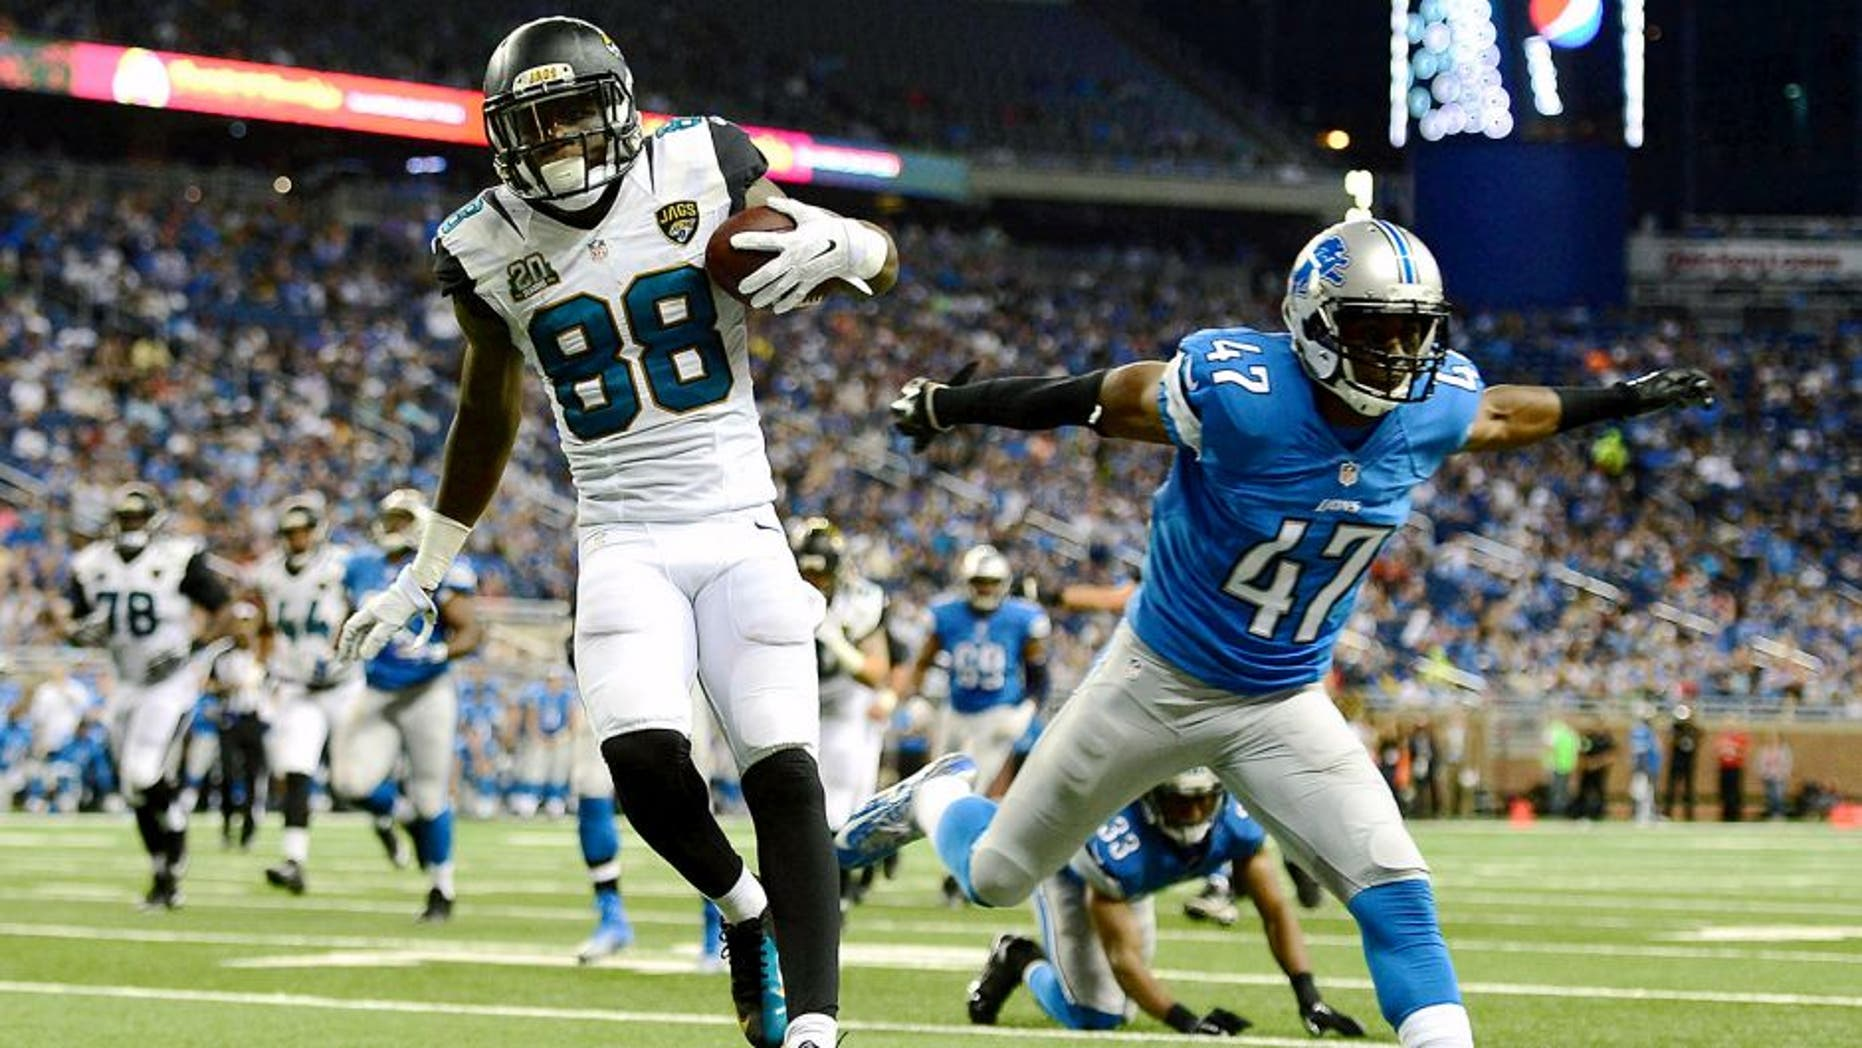 Aug 22, 2014; Detroit, MI, USA; Jacksonville Jaguars wide receiver Allen Hurns (88) gets away from Detroit Lions defensive back Nate Ness (47) to score a touchdown during the third quarter at Ford Field. Mandatory Credit: Andrew Weber-USA TODAY Sports